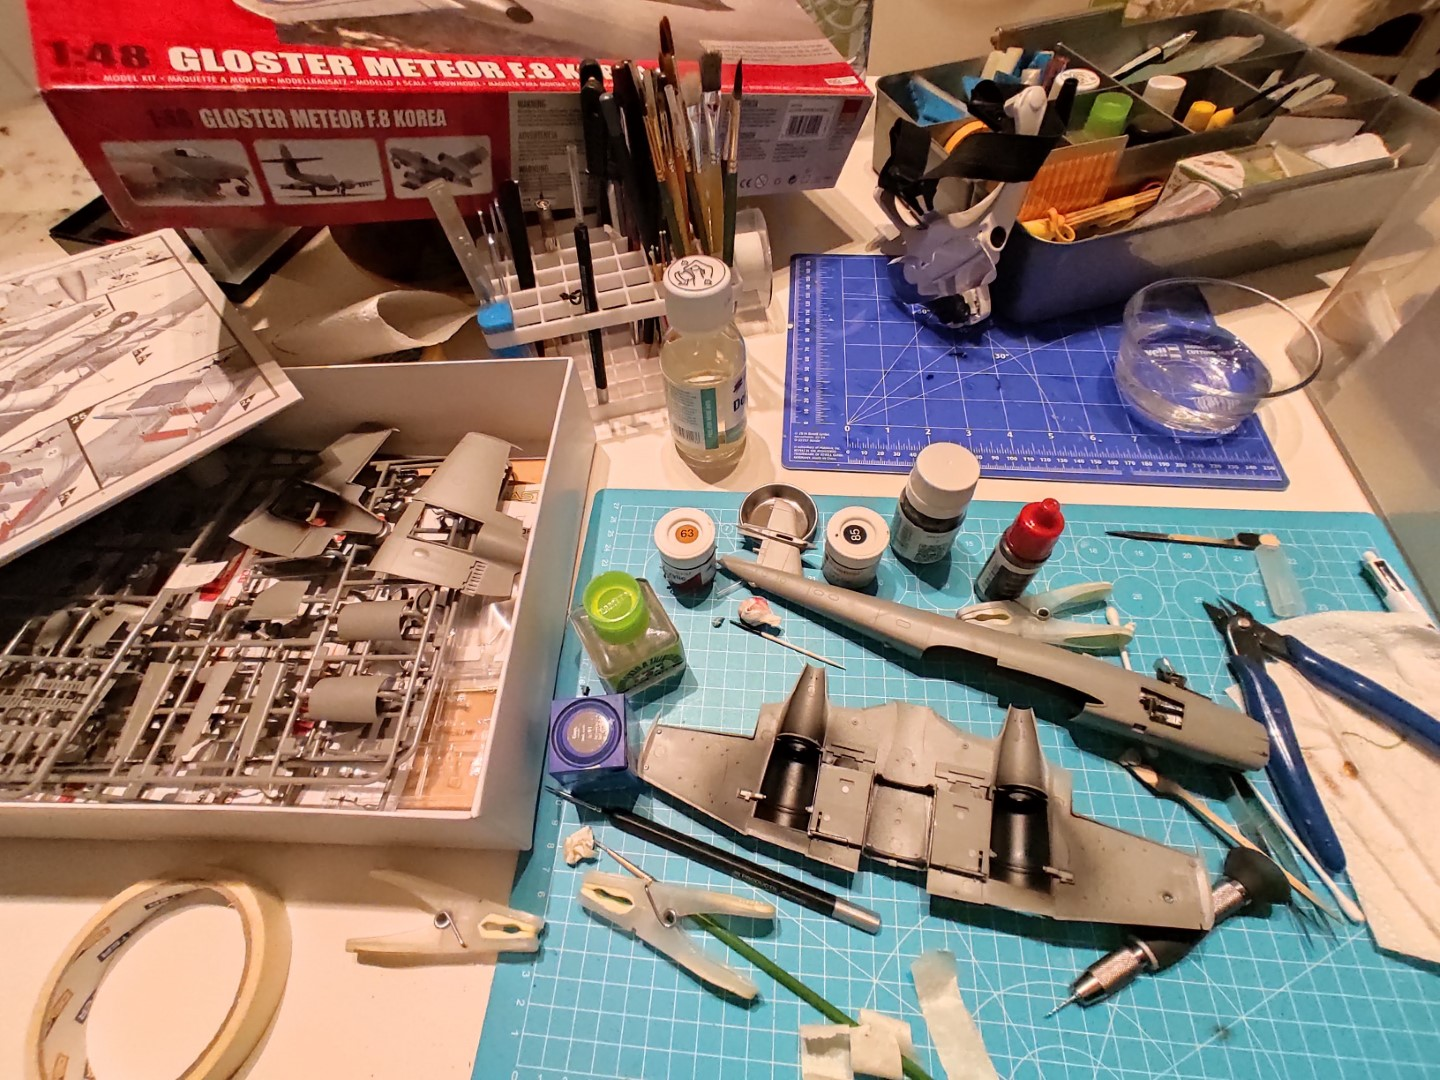 [Work-in-Progress] Airfix Gloster Meteor F.8 - The cockpit and gun bays are ready. Working on the engine nacelles.